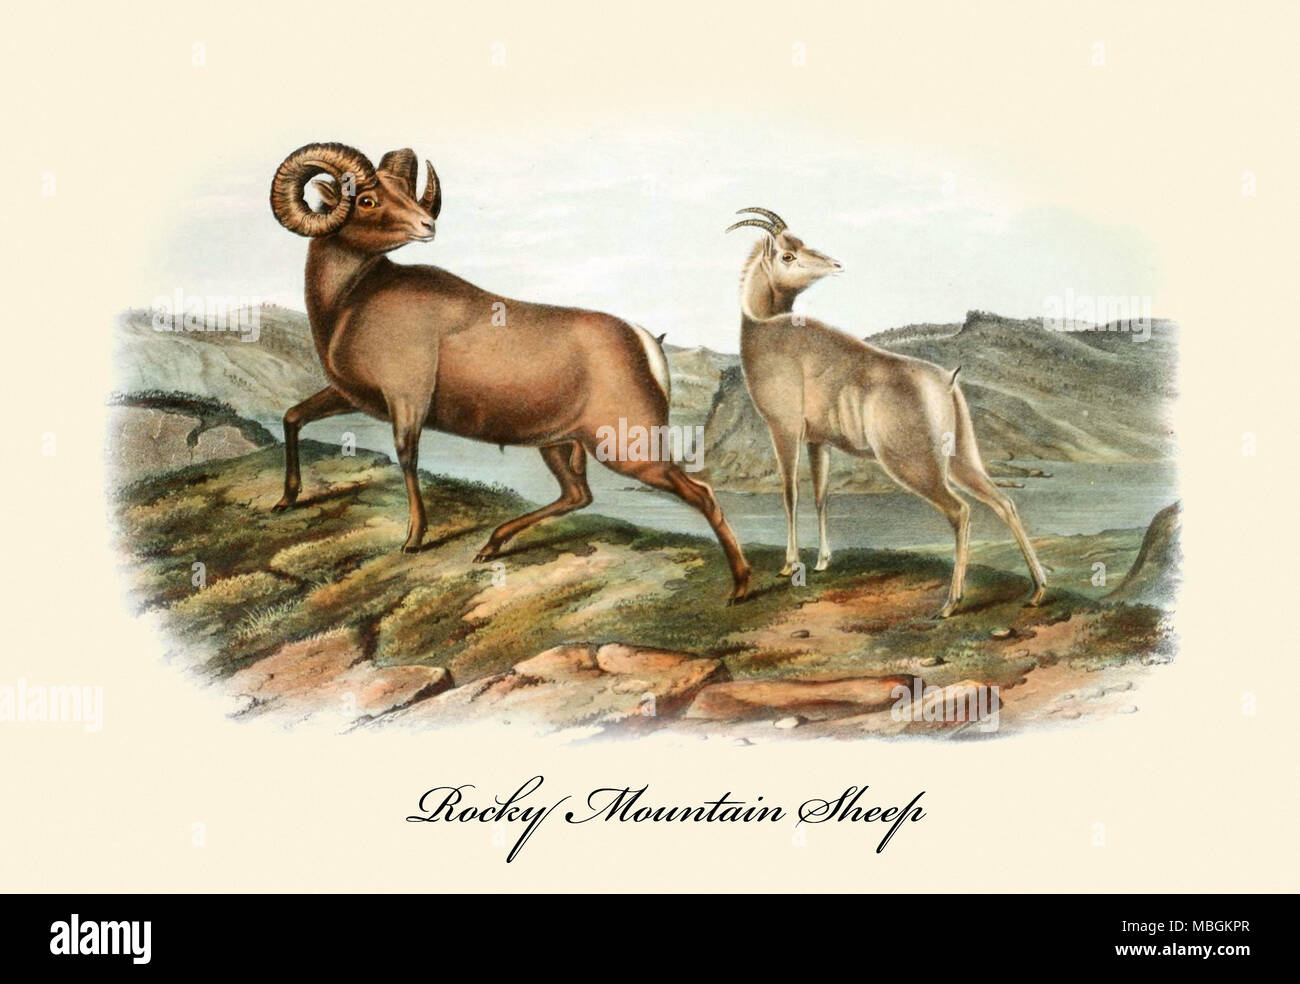 Rocky Mountain Sheep - Stock Image